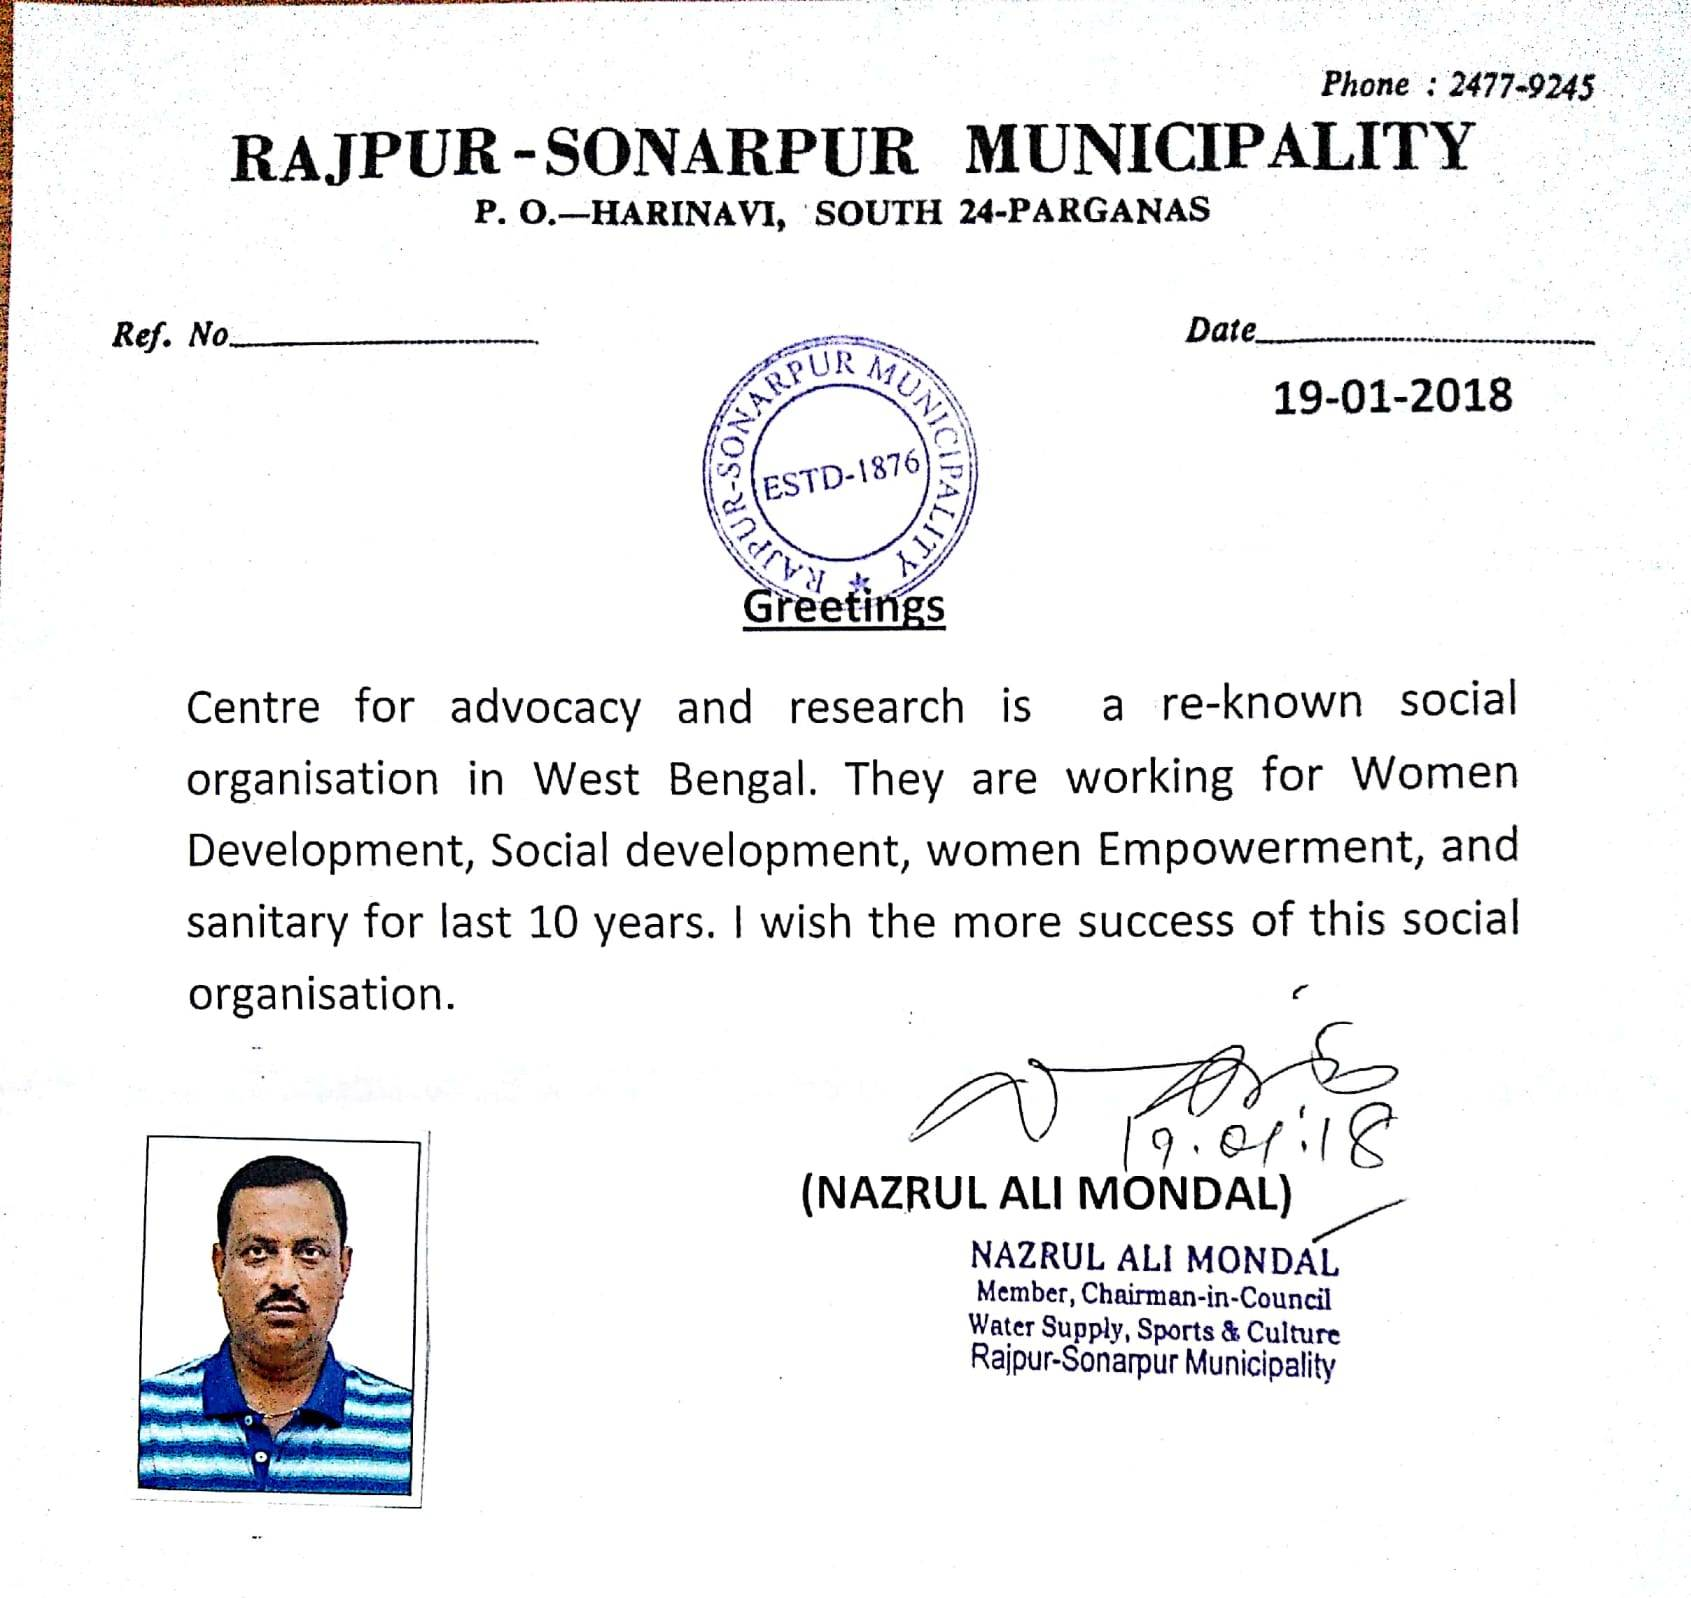 On January 19, 2018 CFAR received Letter of Appreciation from Rajpur-Sonarpur Municipal Corporation for work on Social Development, Women Empowerment and Sanitation in Kolkata